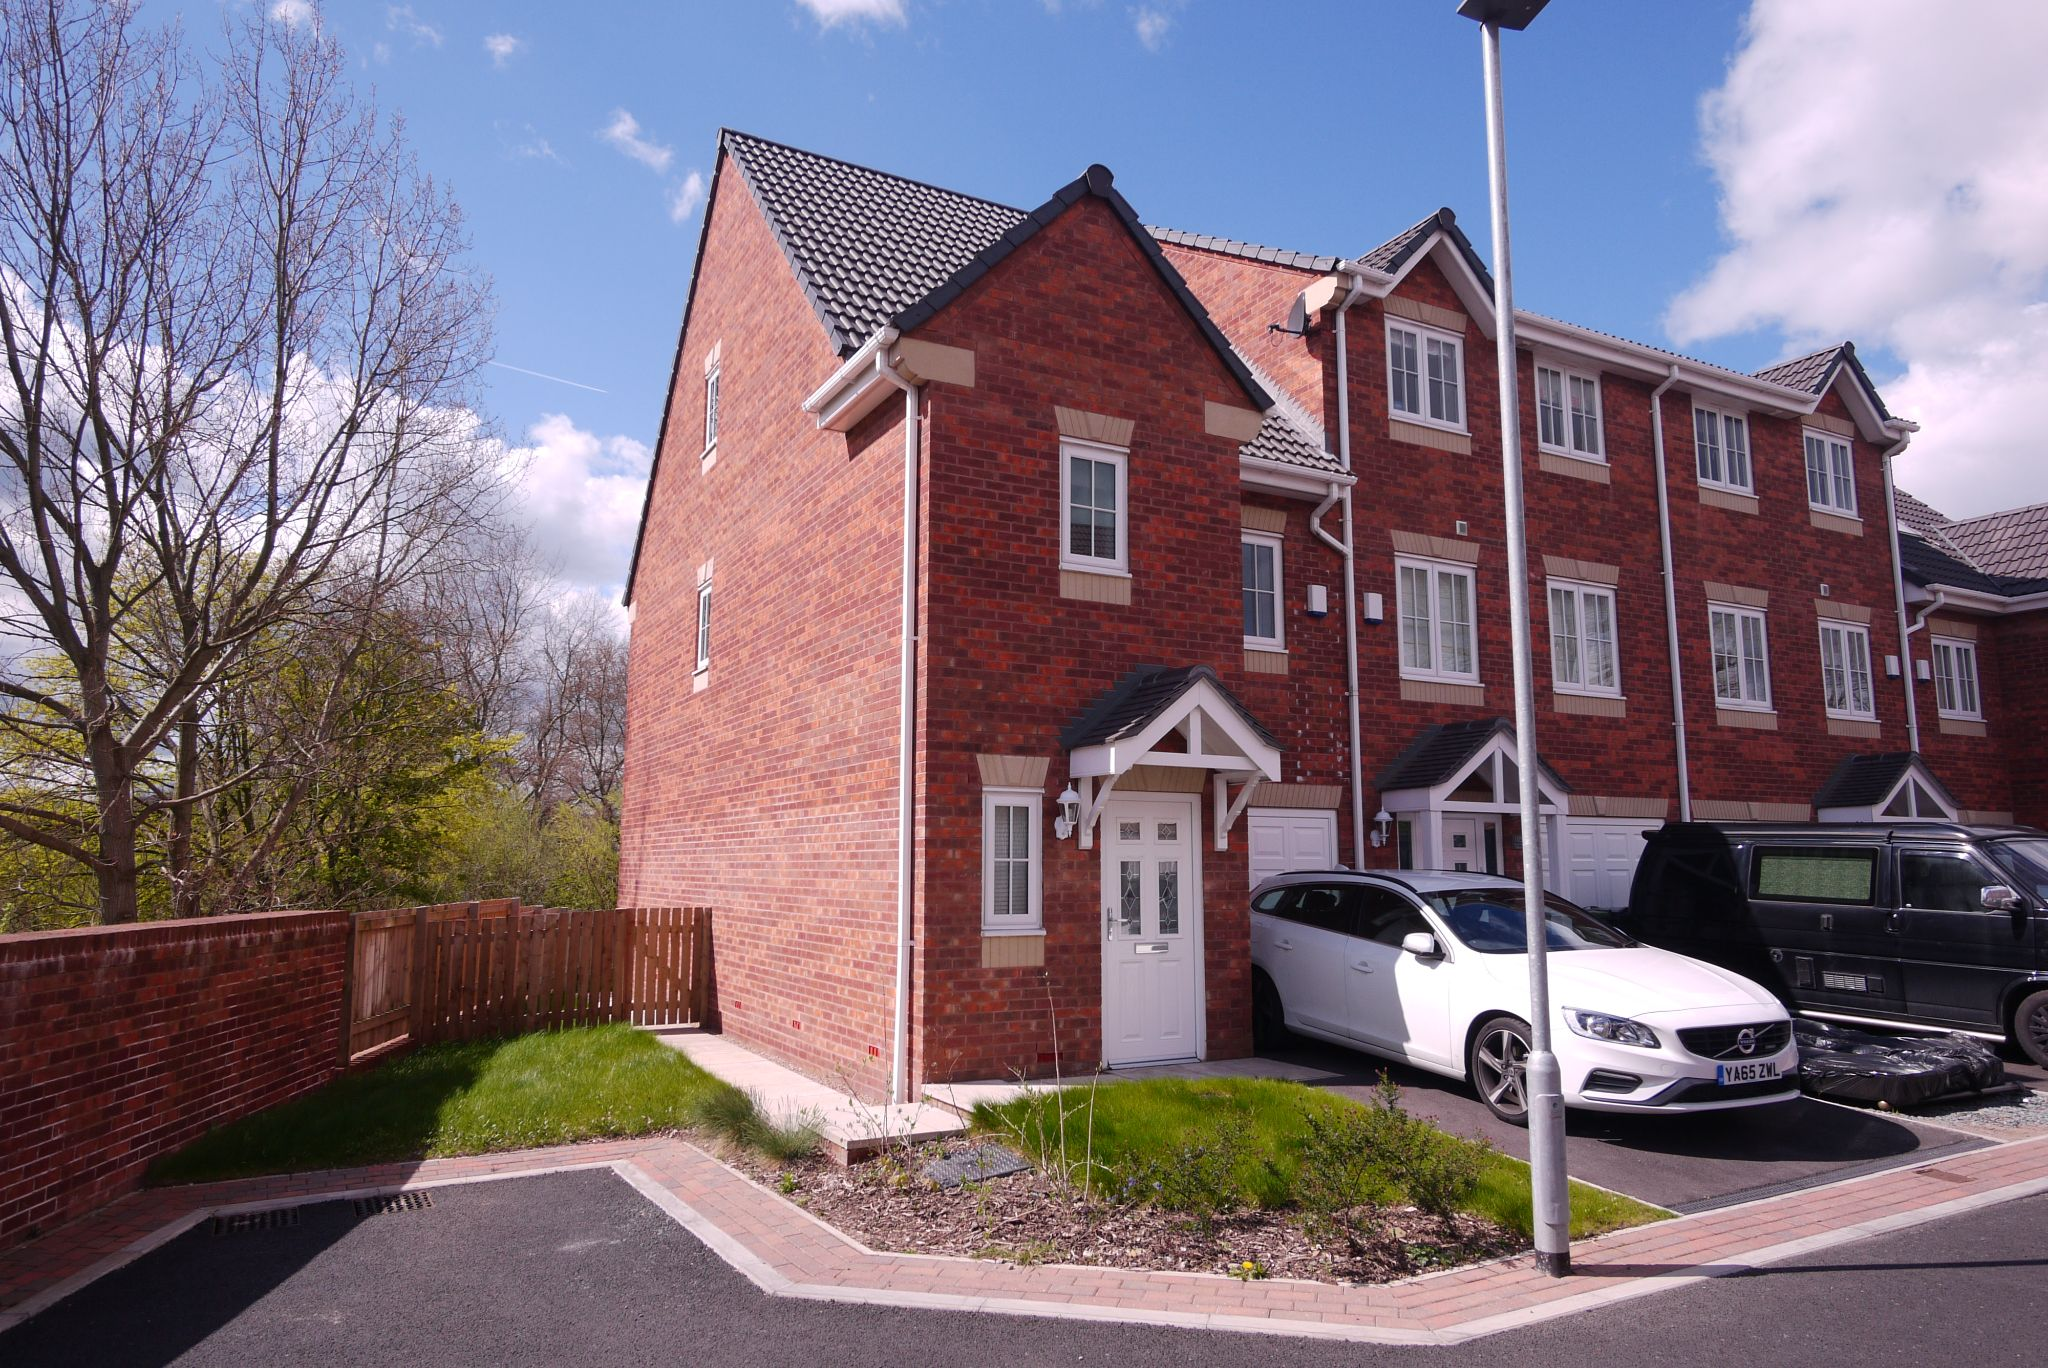 3 bedroom town house SSTC in Mirfield - Photograph 1.